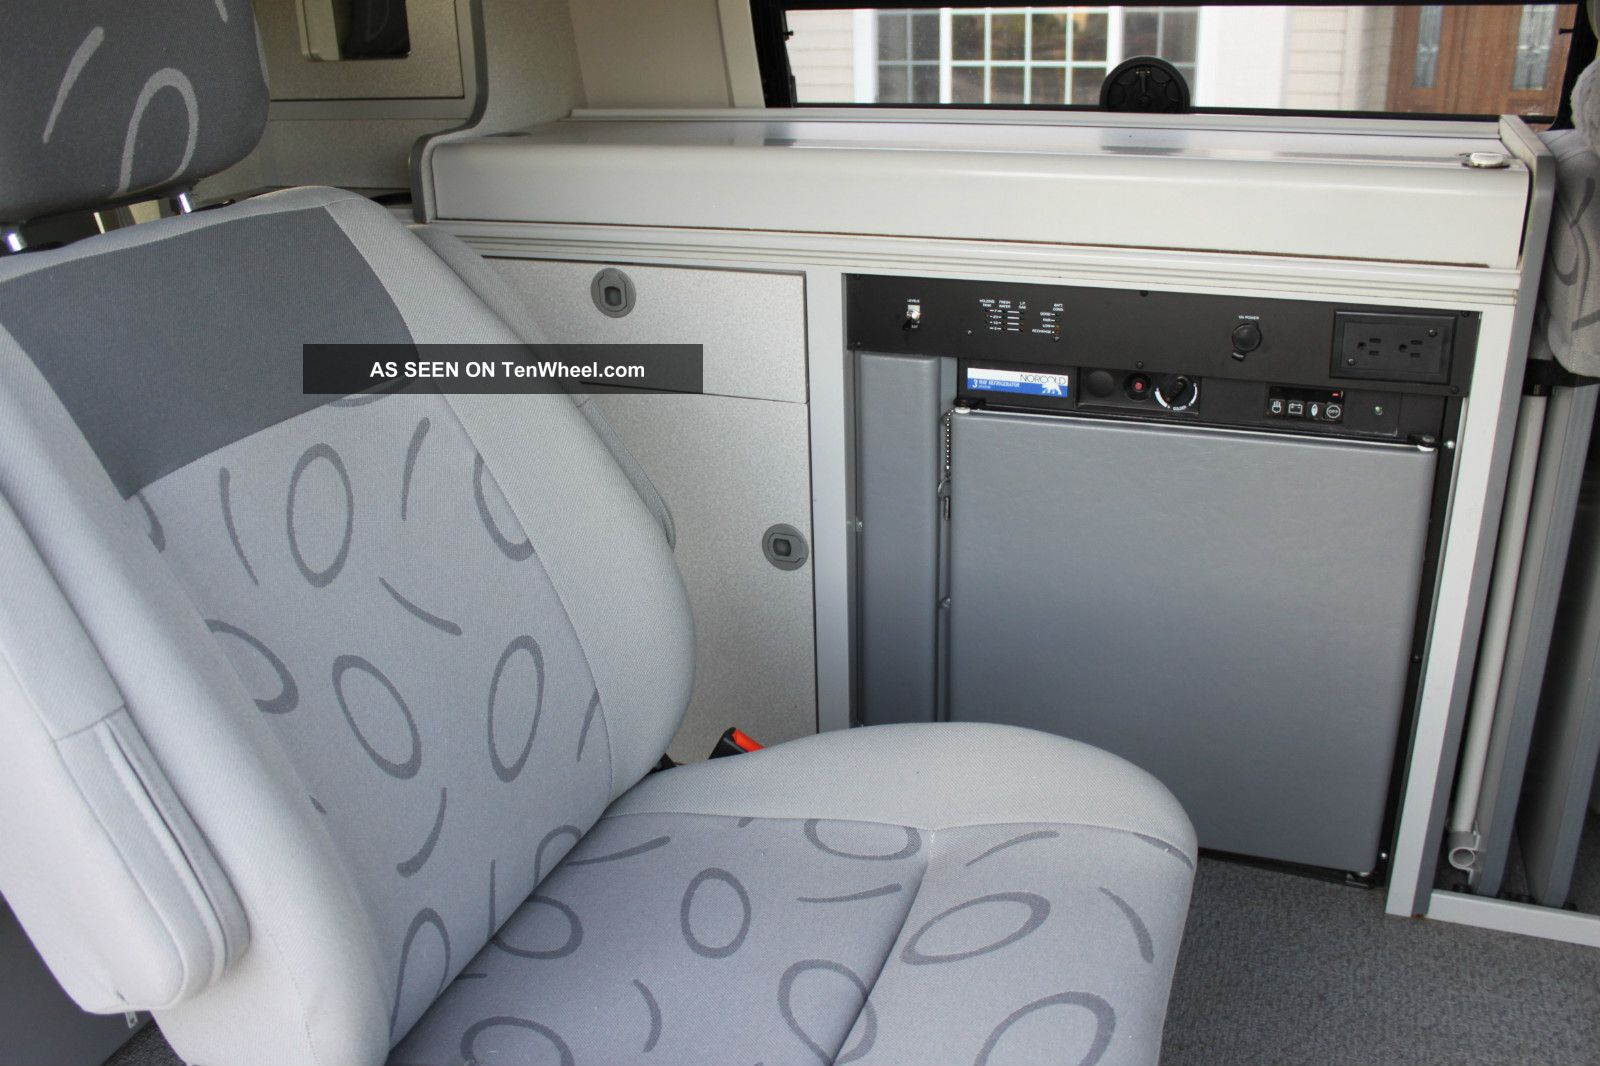 Amazing In Fact, The Era Offers A Removable Wardrobe That Can Substitute For The Companion Chair Behind The Drivers Seat  Bar Covers And Rocker Panel Trim The Era Joins Winnebago Industries Other Sprinterbased Motorhomes, The Class C